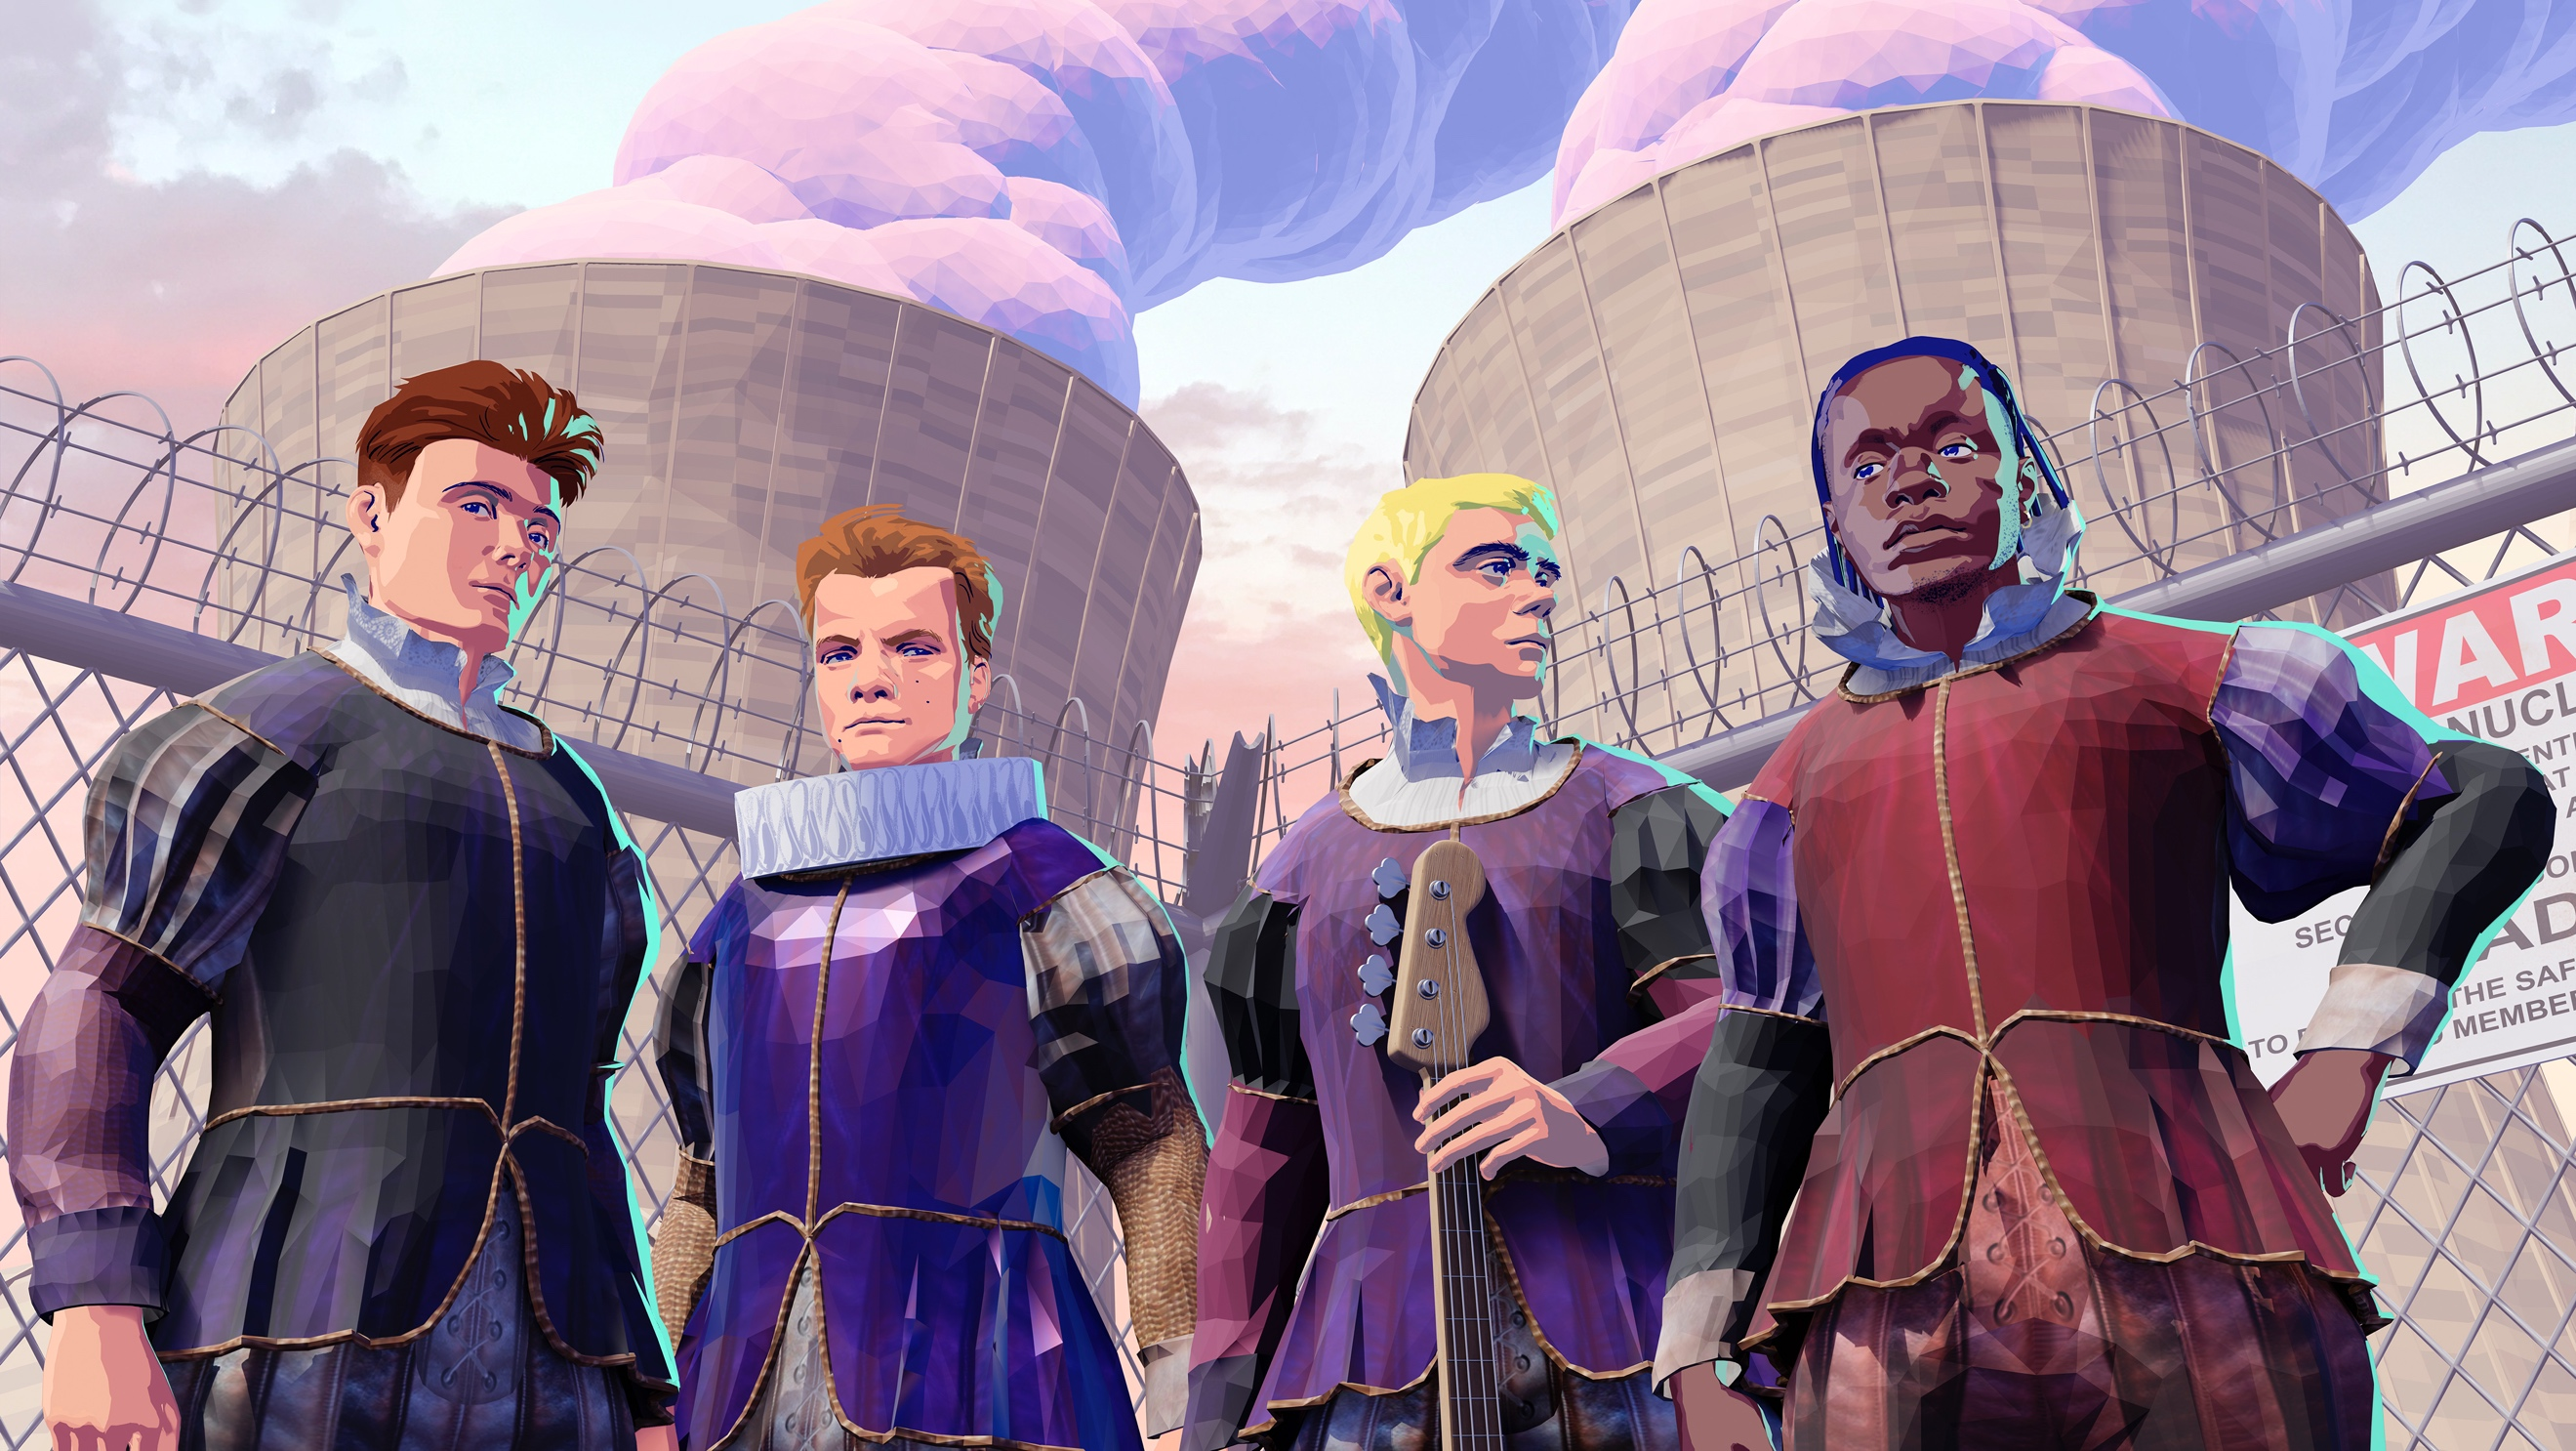 Black Midi announce Dublin date at the Button Factory